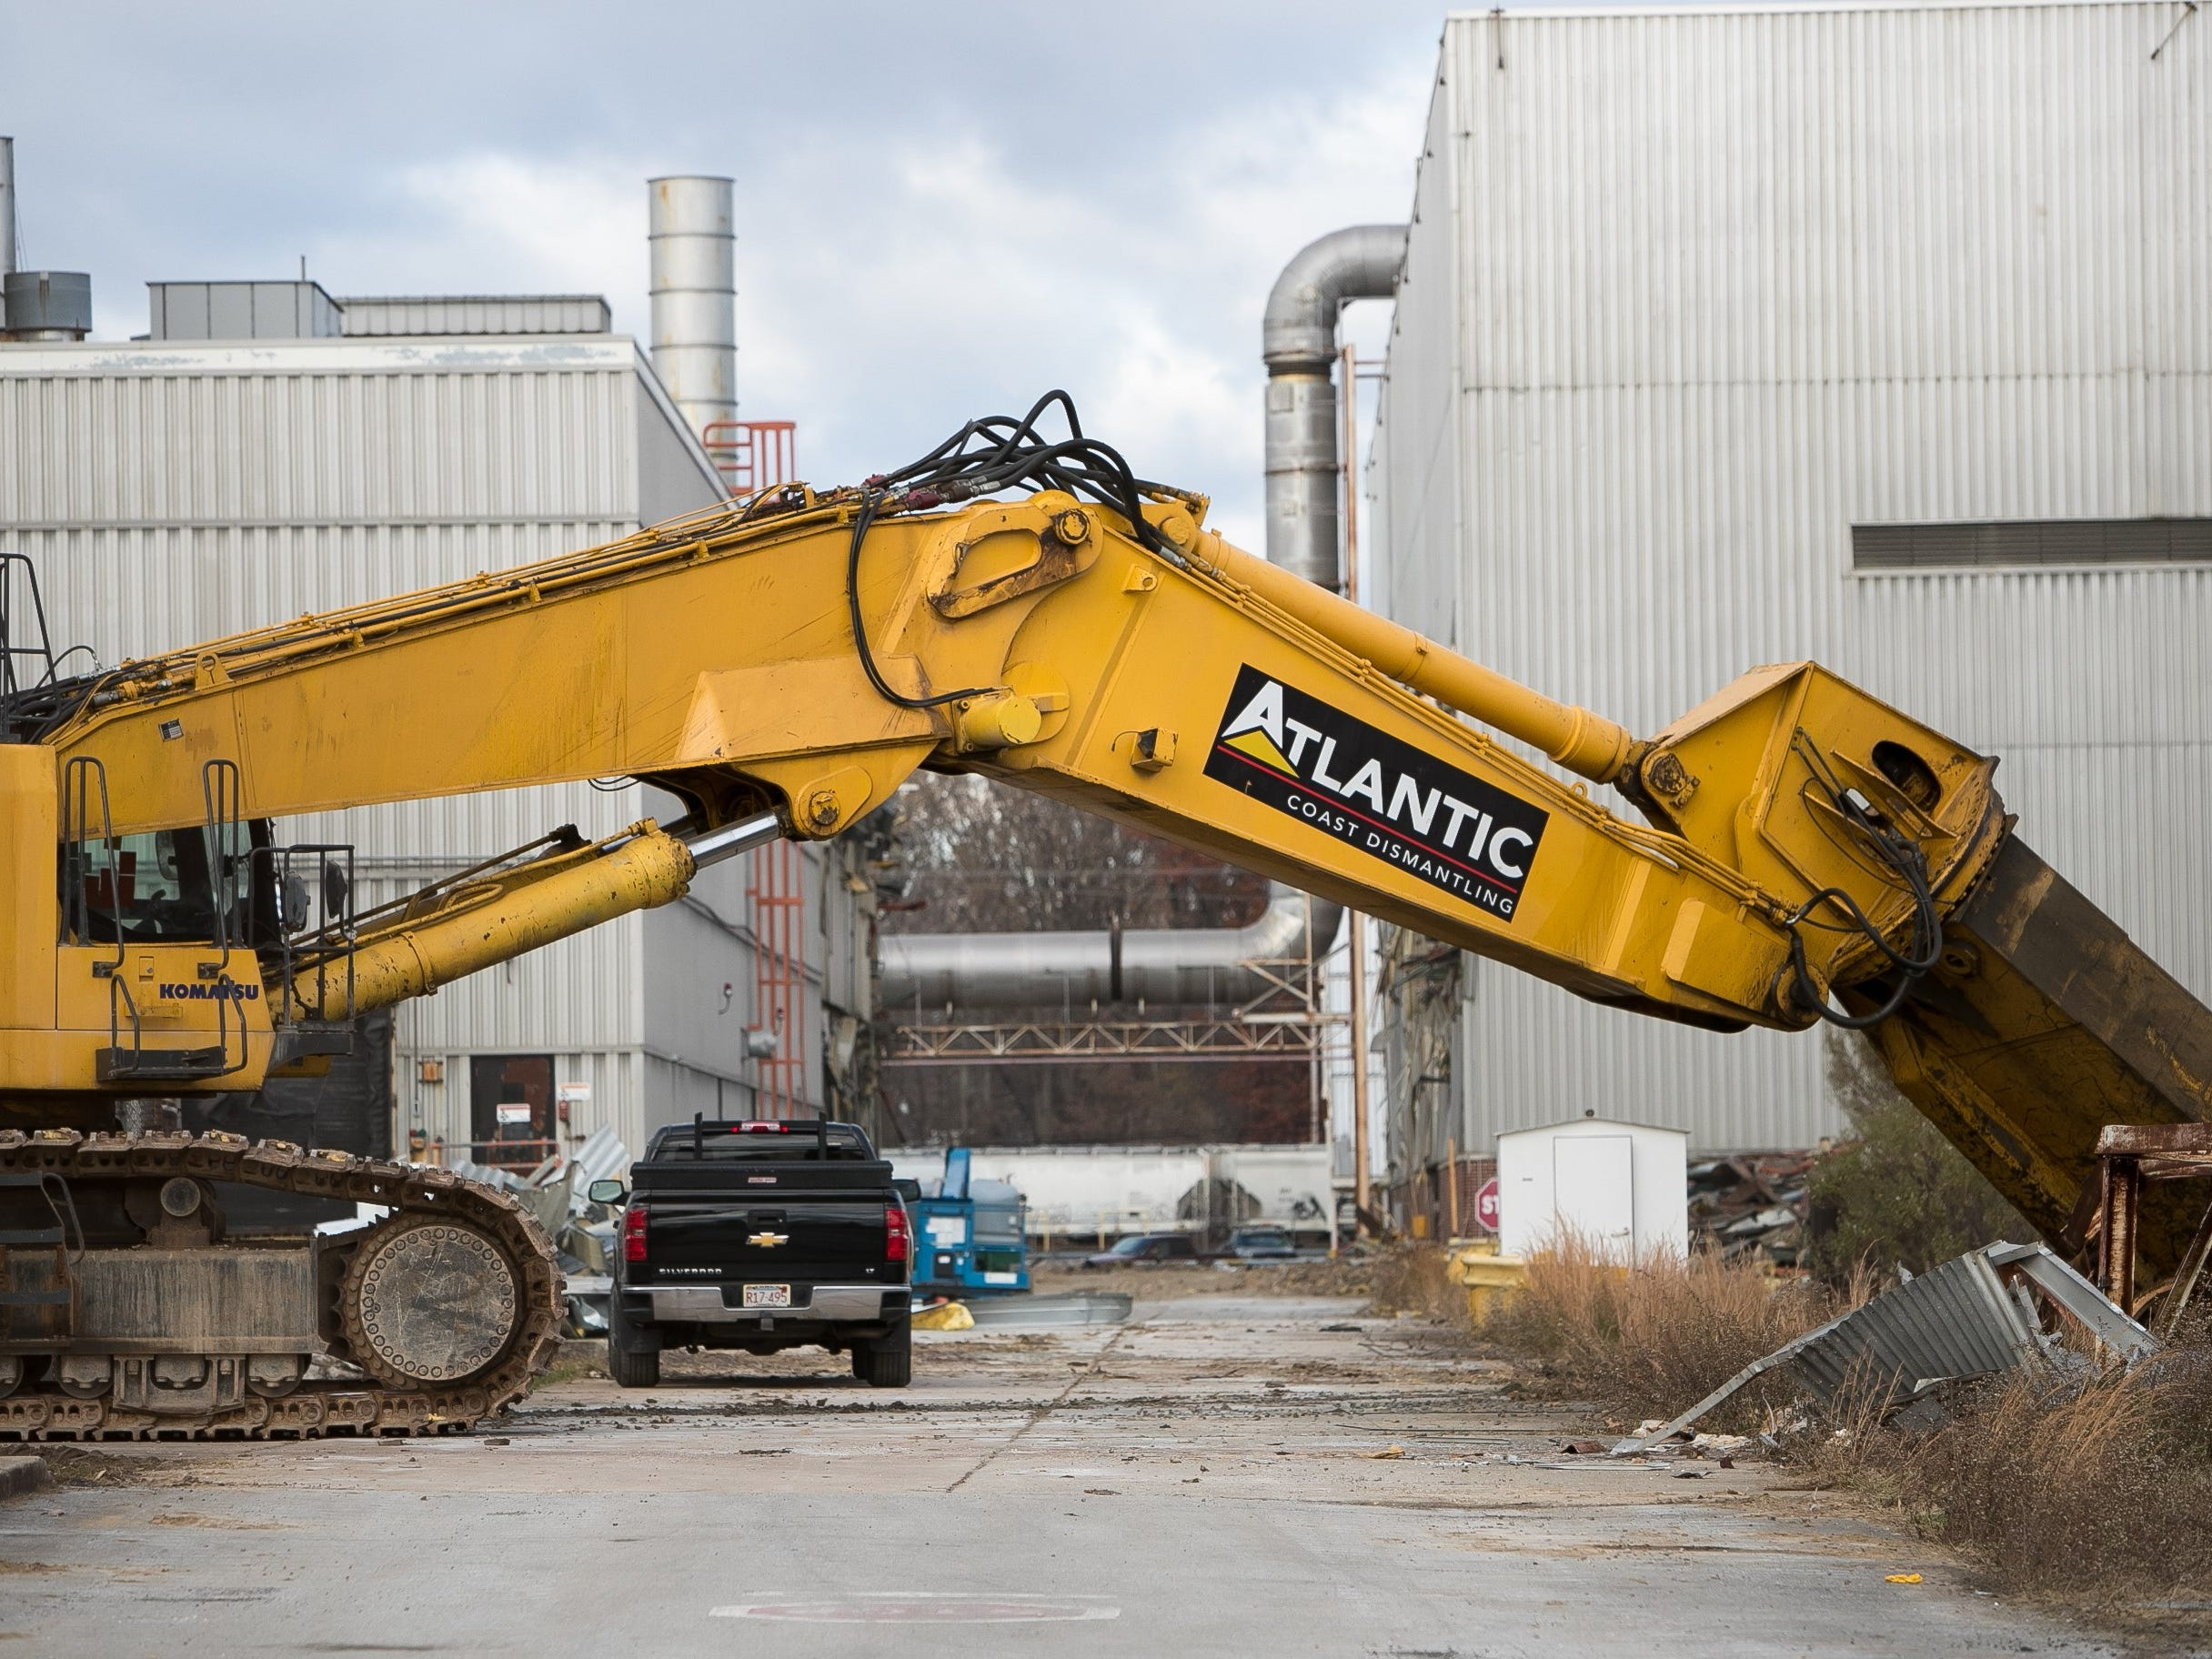 Demolition began this week of the GM plant that formerly housed thousands of Delaware auto workers. After demolition of the near 3-million-square-foot facility, the Boxwood Road plant will be home to a business, fulfillment and distribution campus spread across four buildings with a smaller footprint than the previous structure.